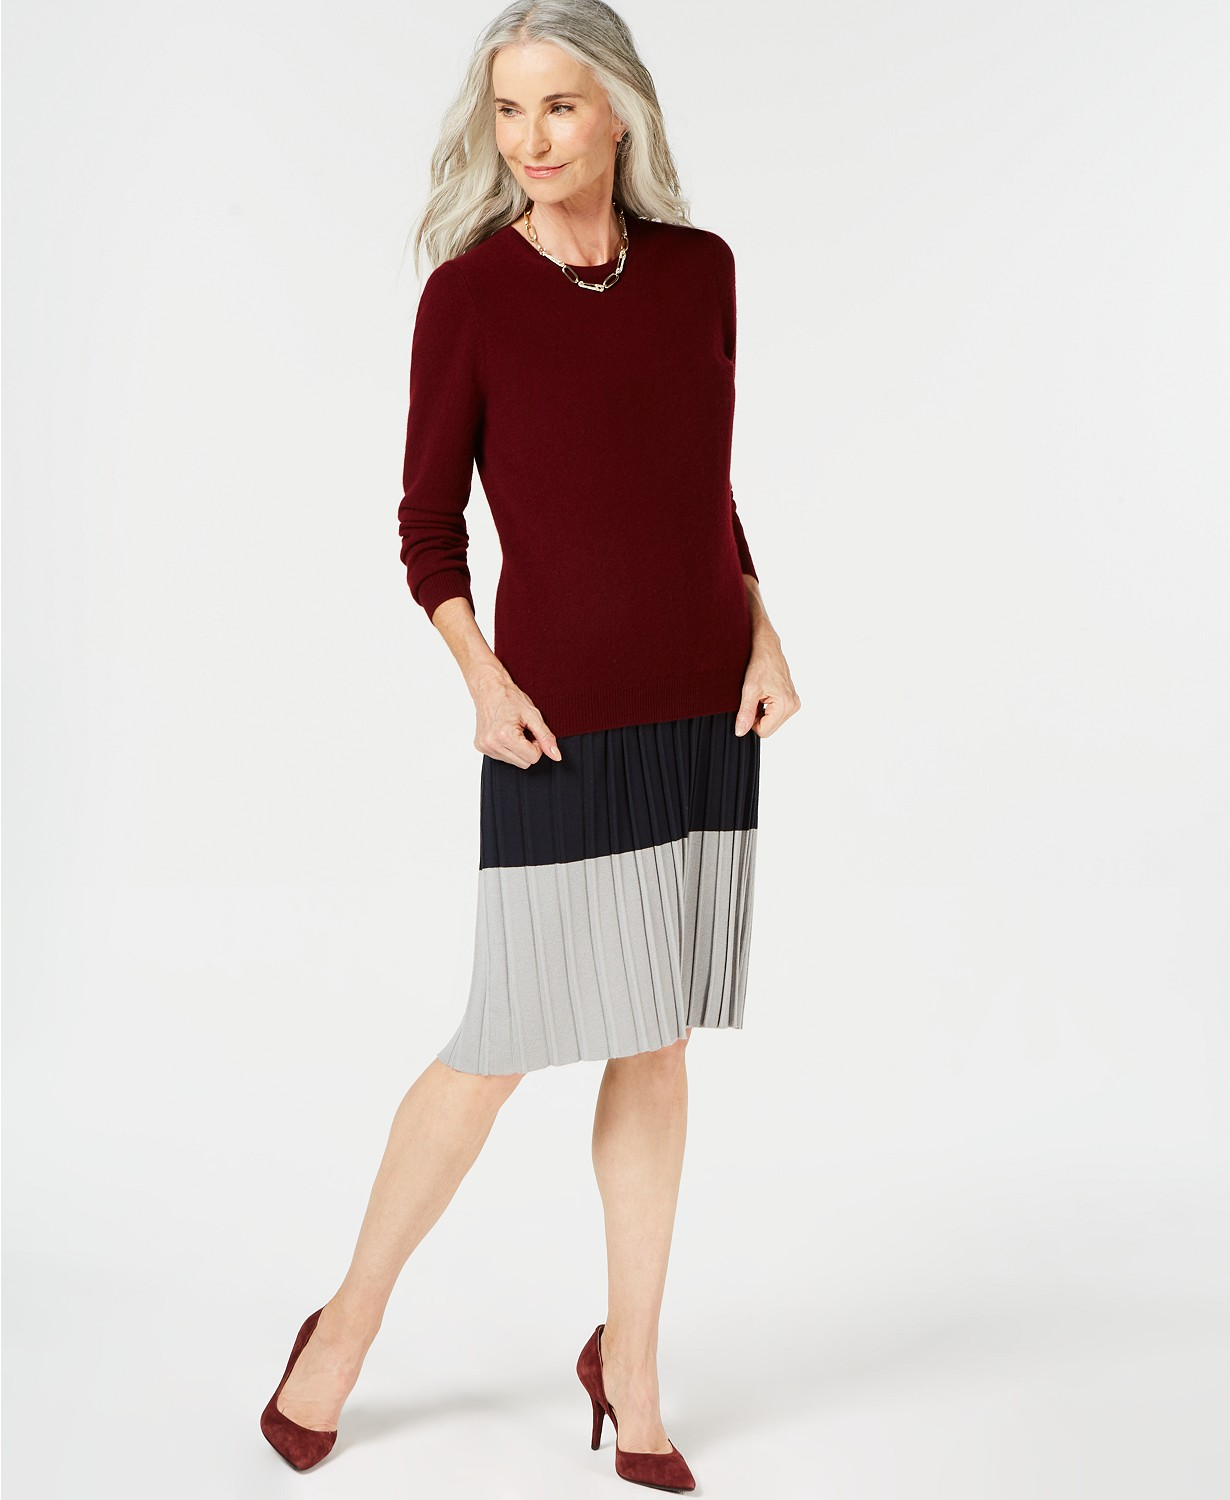 Save 64% on Charter Club Pure Cashmere Solid Crewneck Sweater in Regular & Petite Sizes